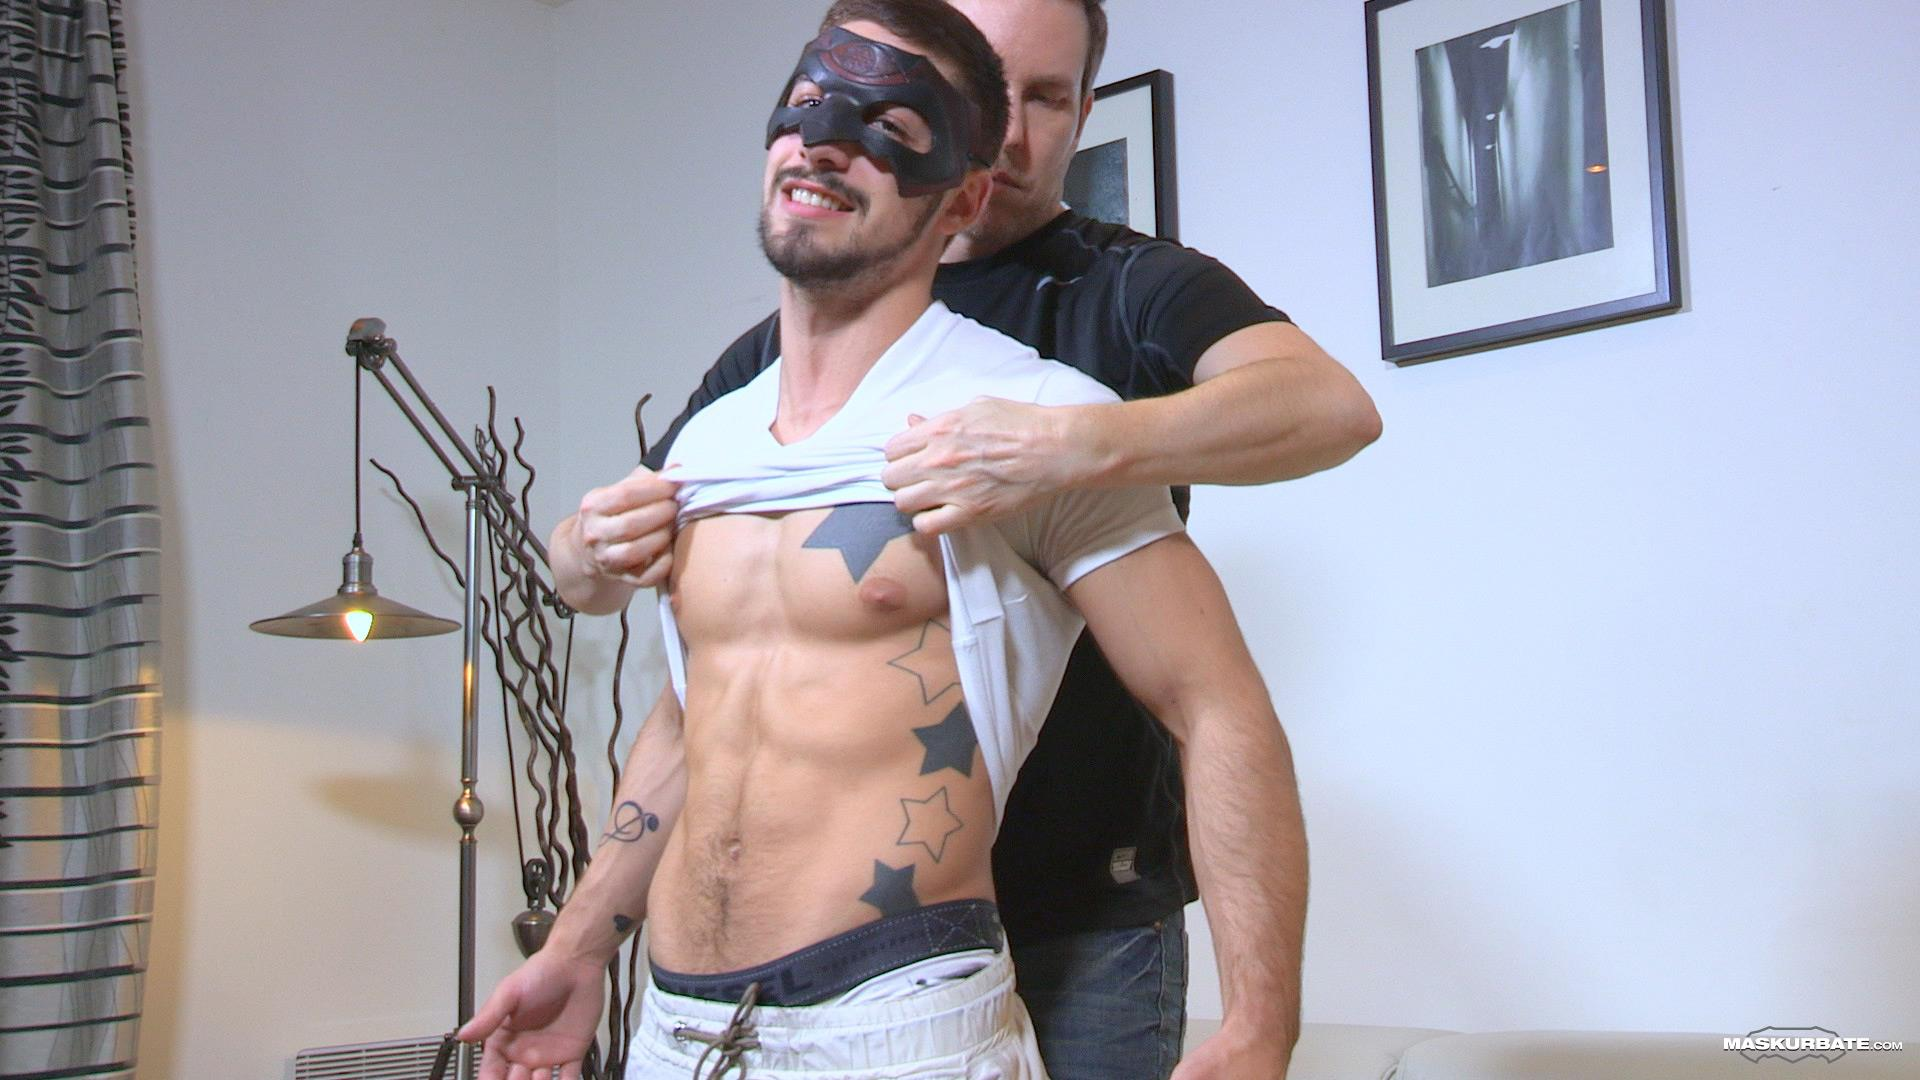 Maskurbate Carl Straight Muscle Jock With A Big Cock Amateur Gay Porn 01 Straight Muscle Hunk Gets His First Blow Job From Another Guy